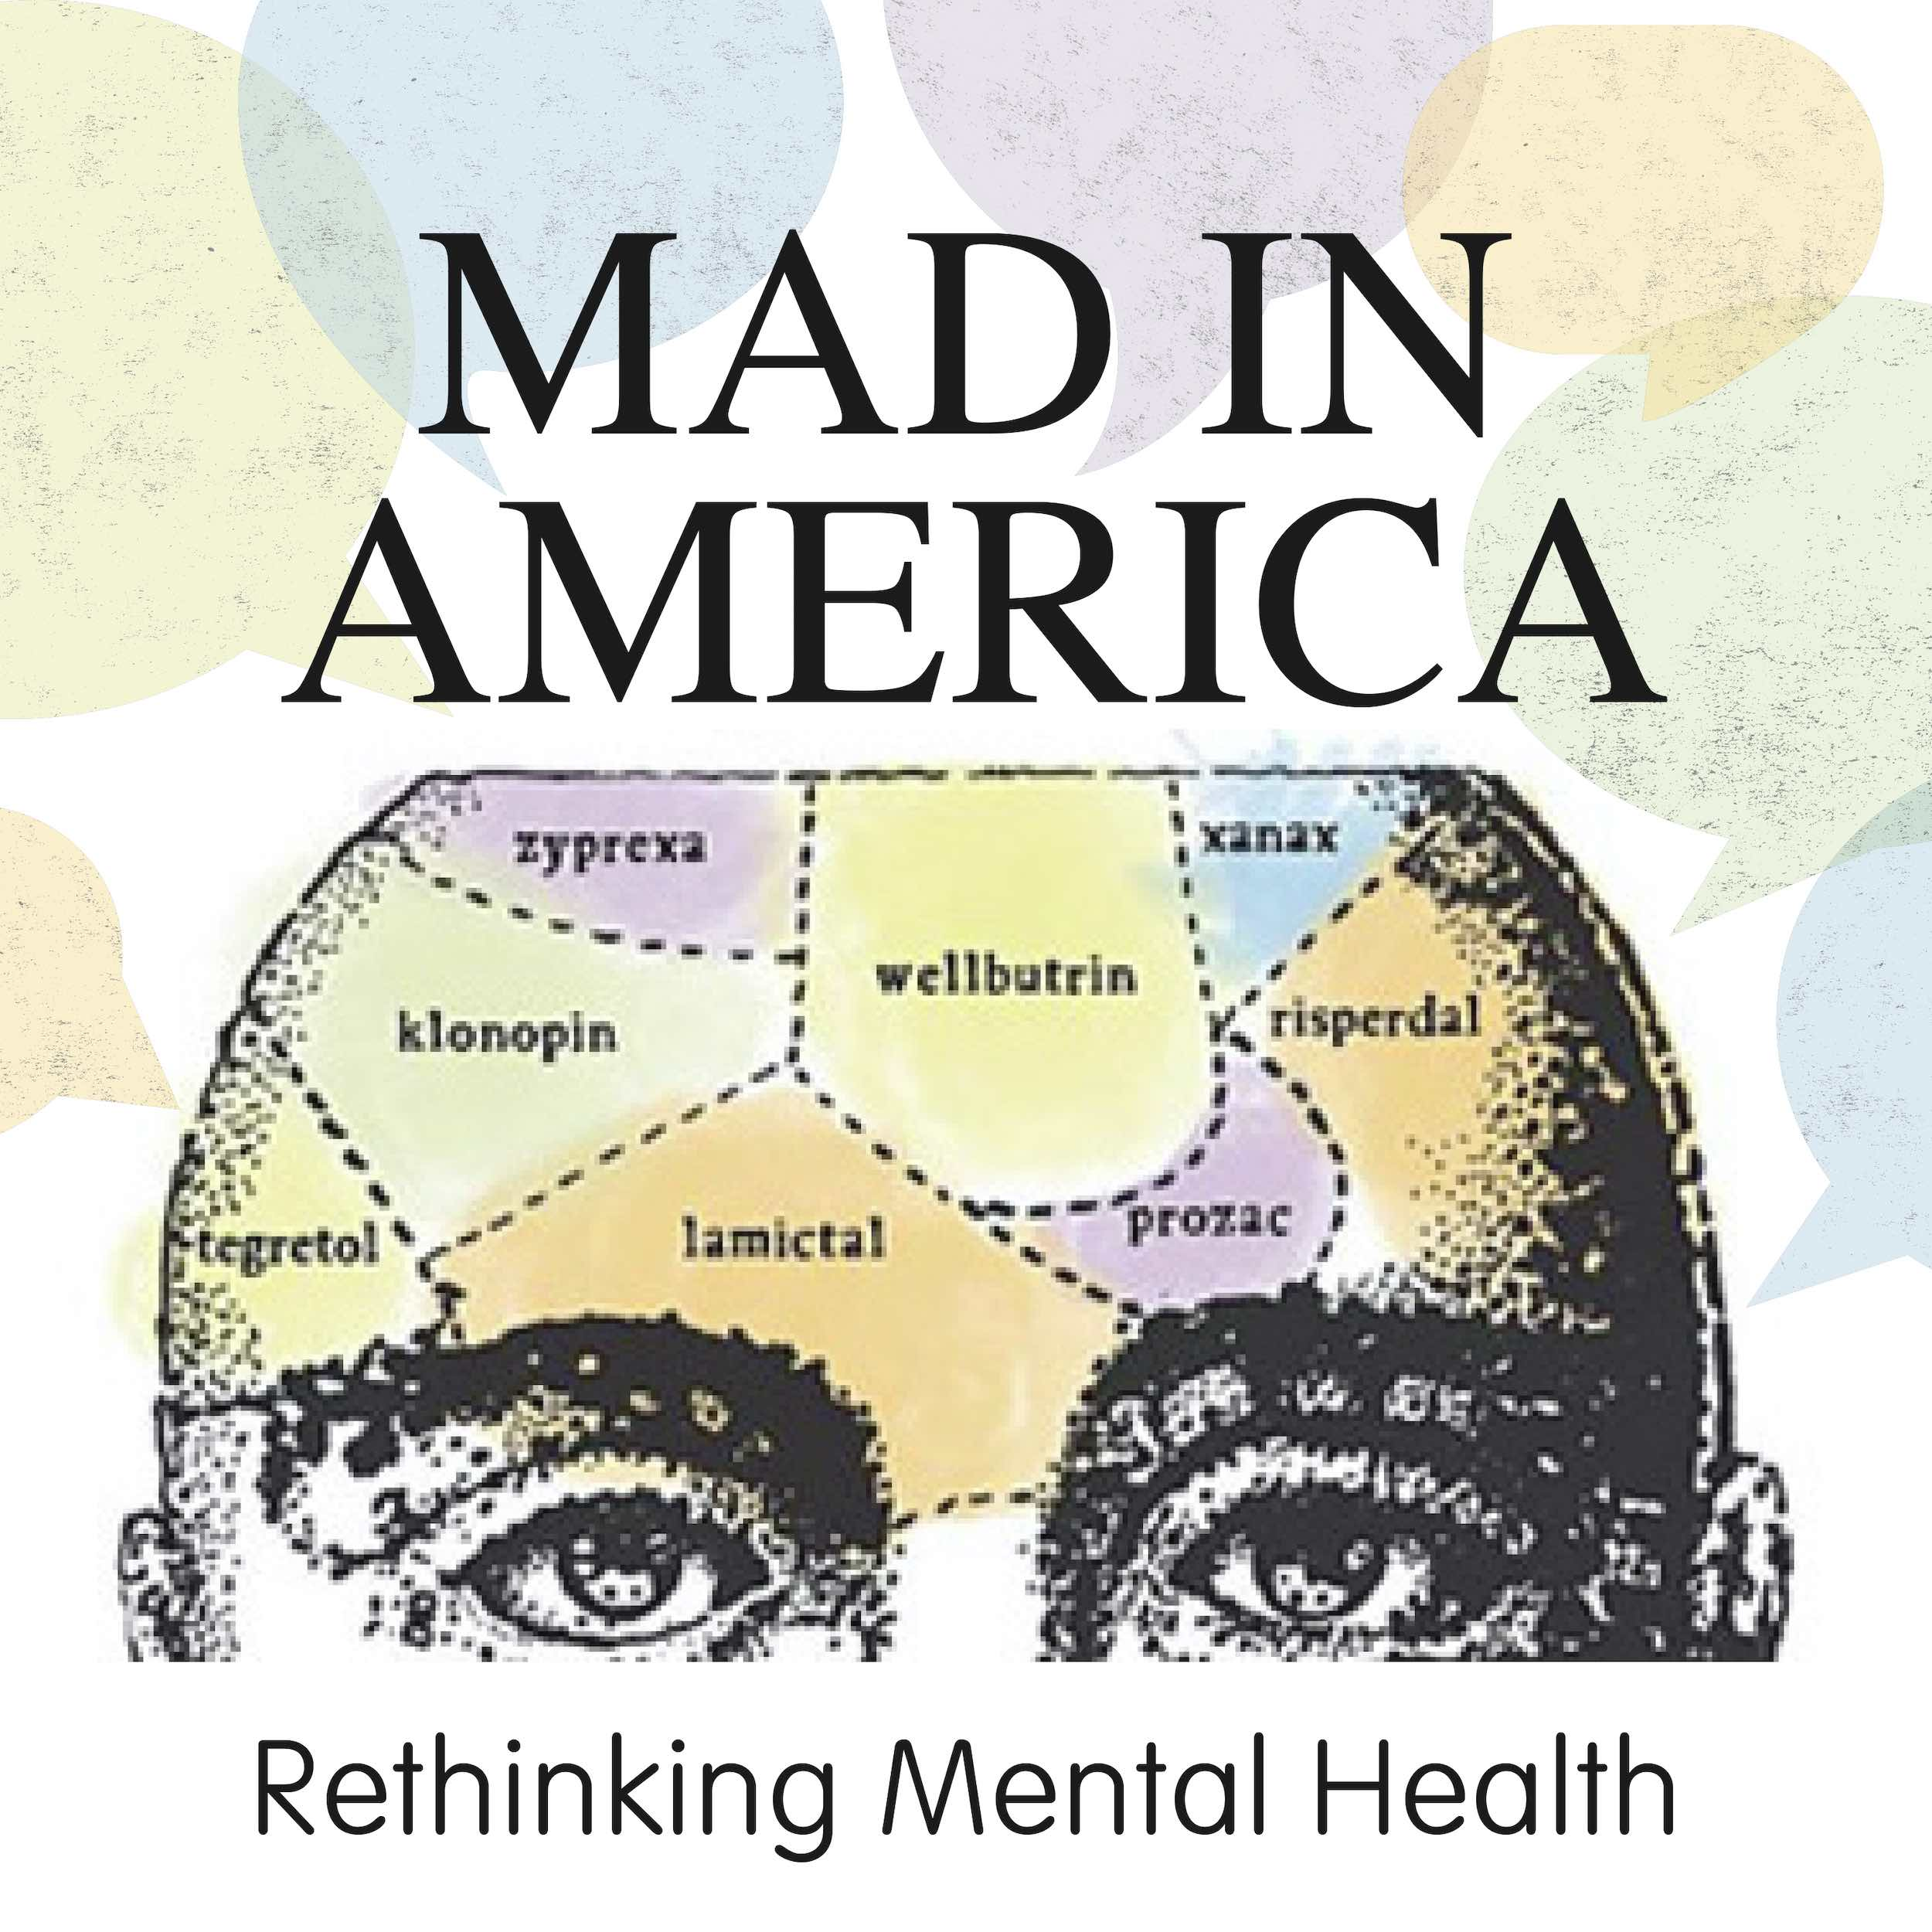 Mad in America: Rethinking Mental Health - Howard Glasser - The Nurtured Heart Approach